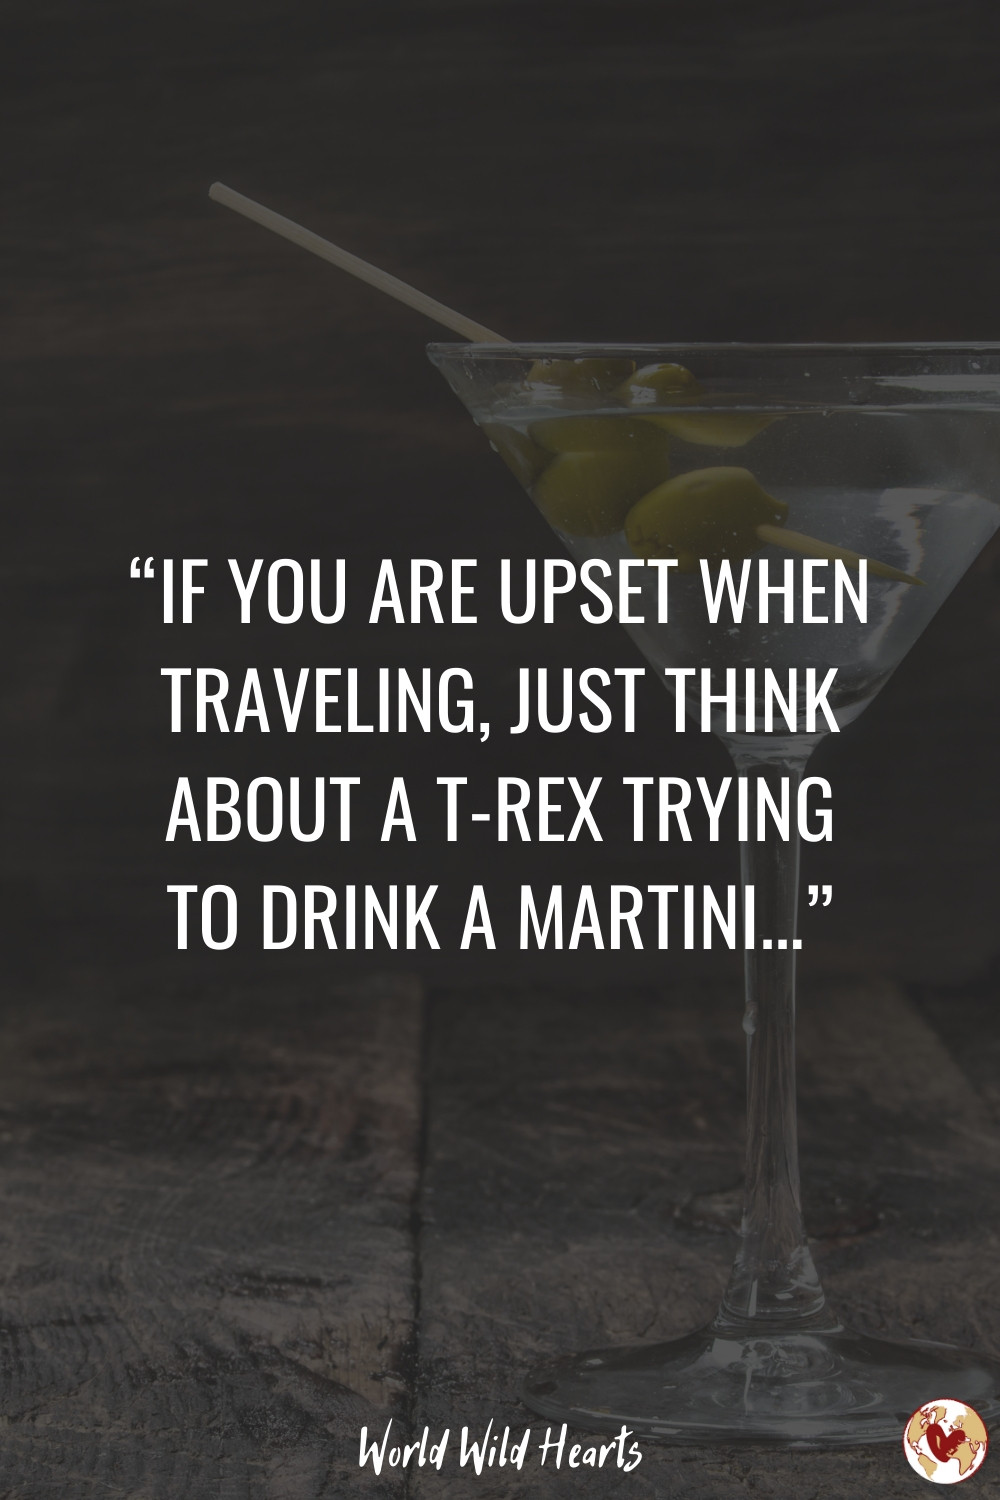 The funniest travel quote